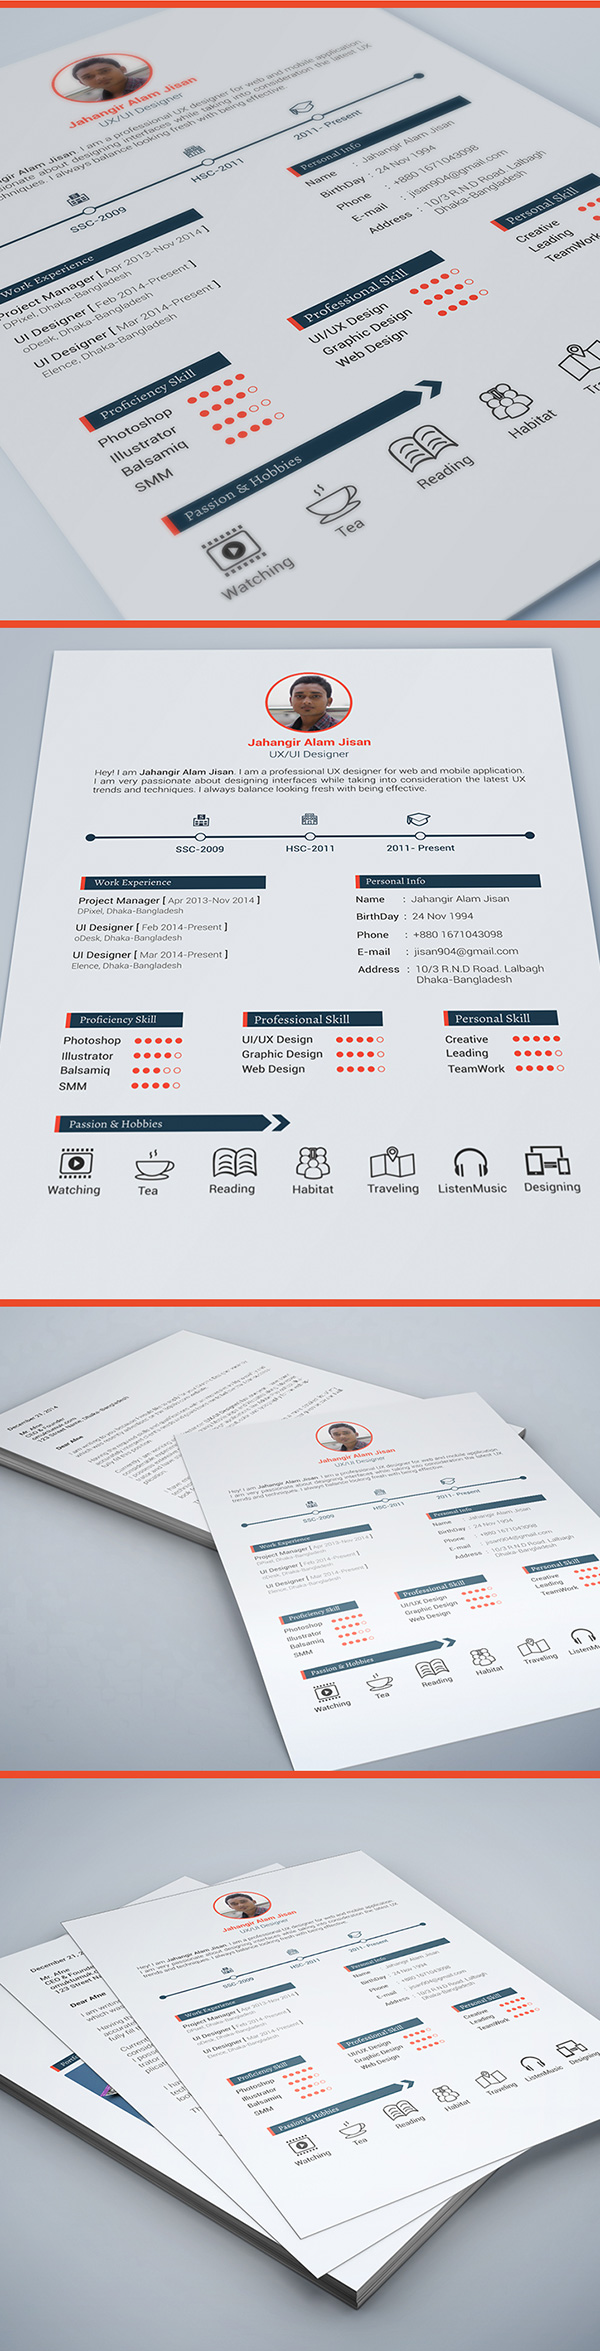 7.resume template